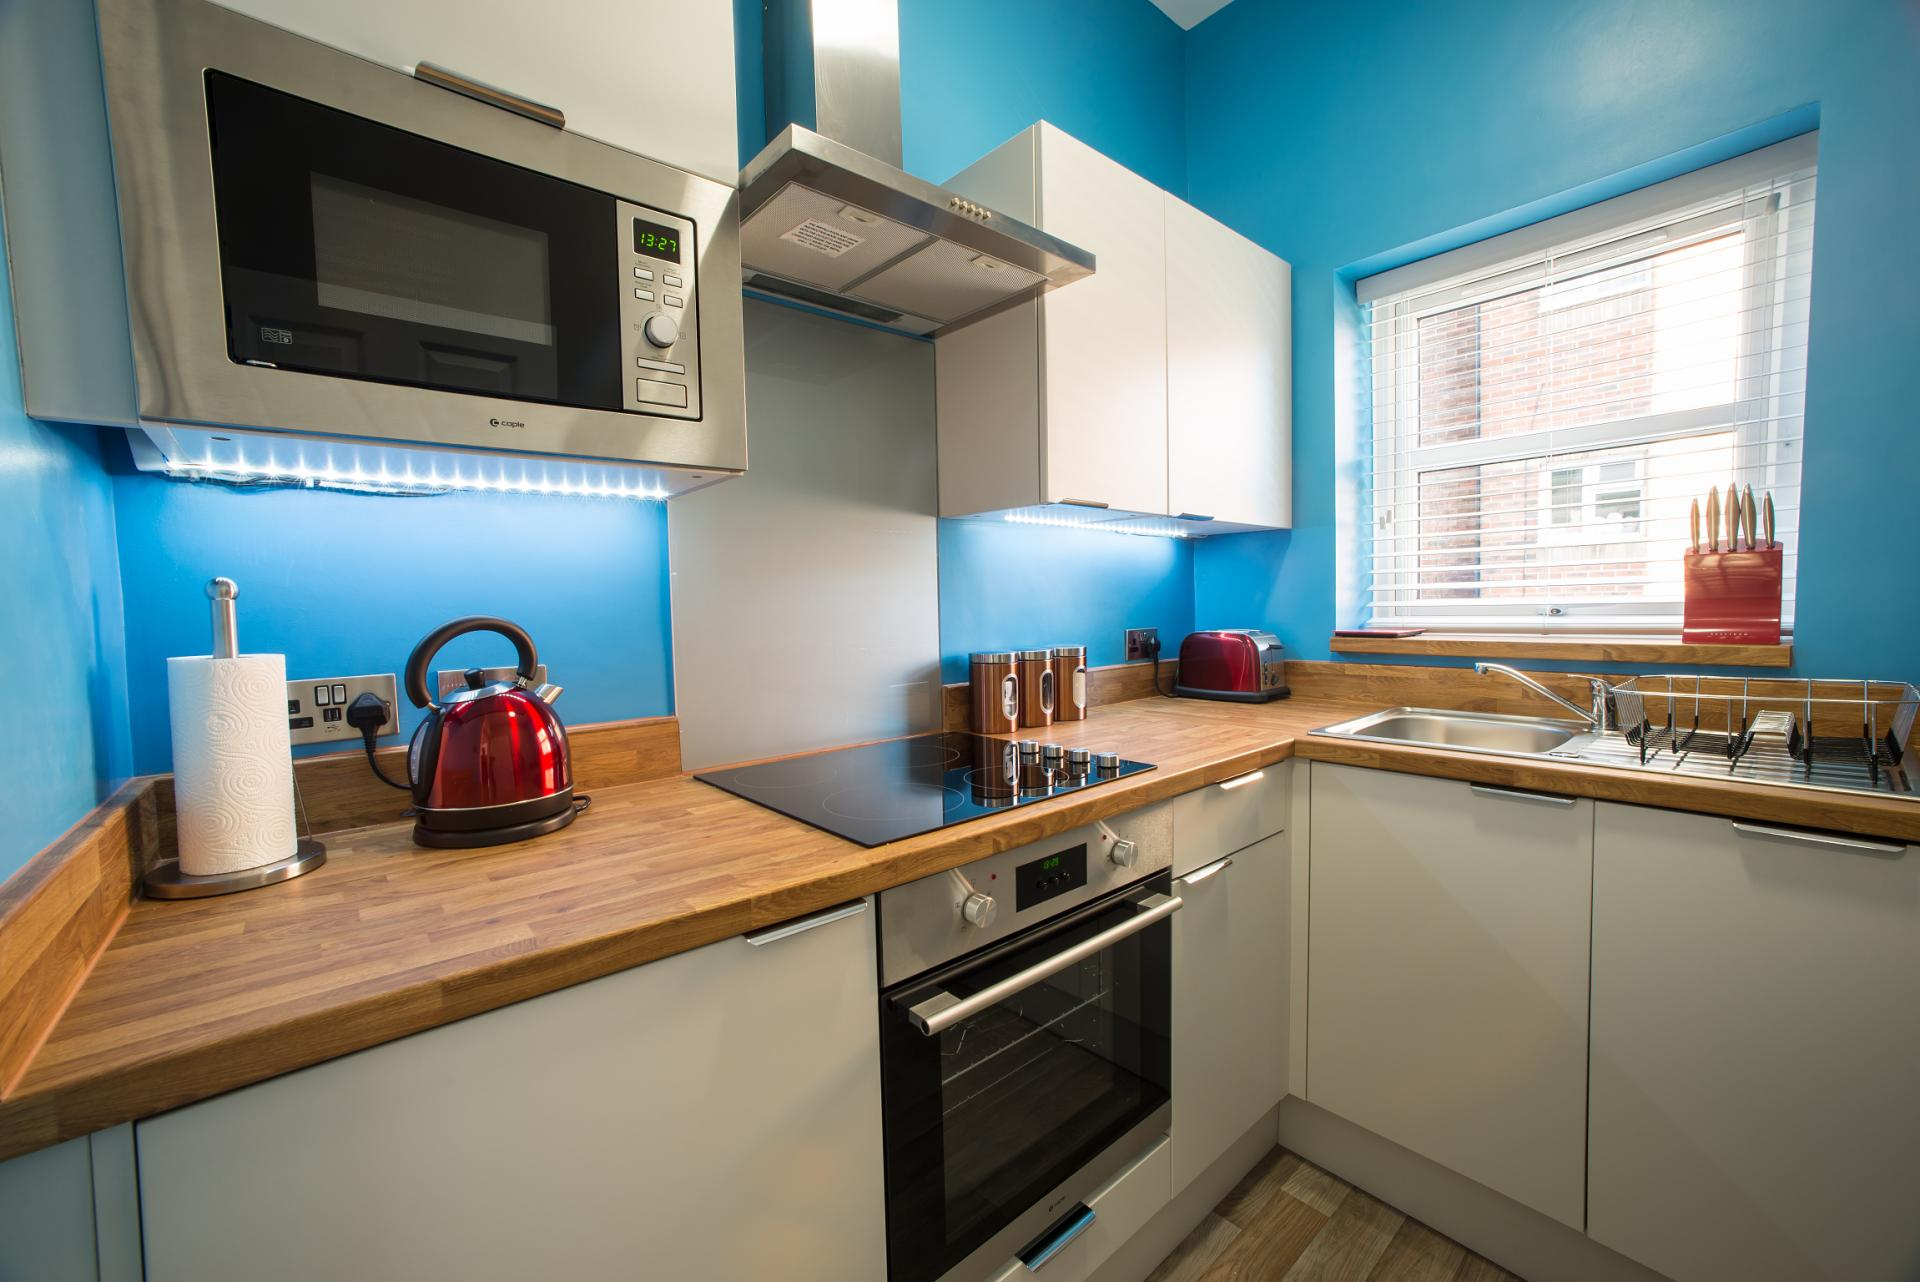 Equipped kitchen at Chine Garden Apartment